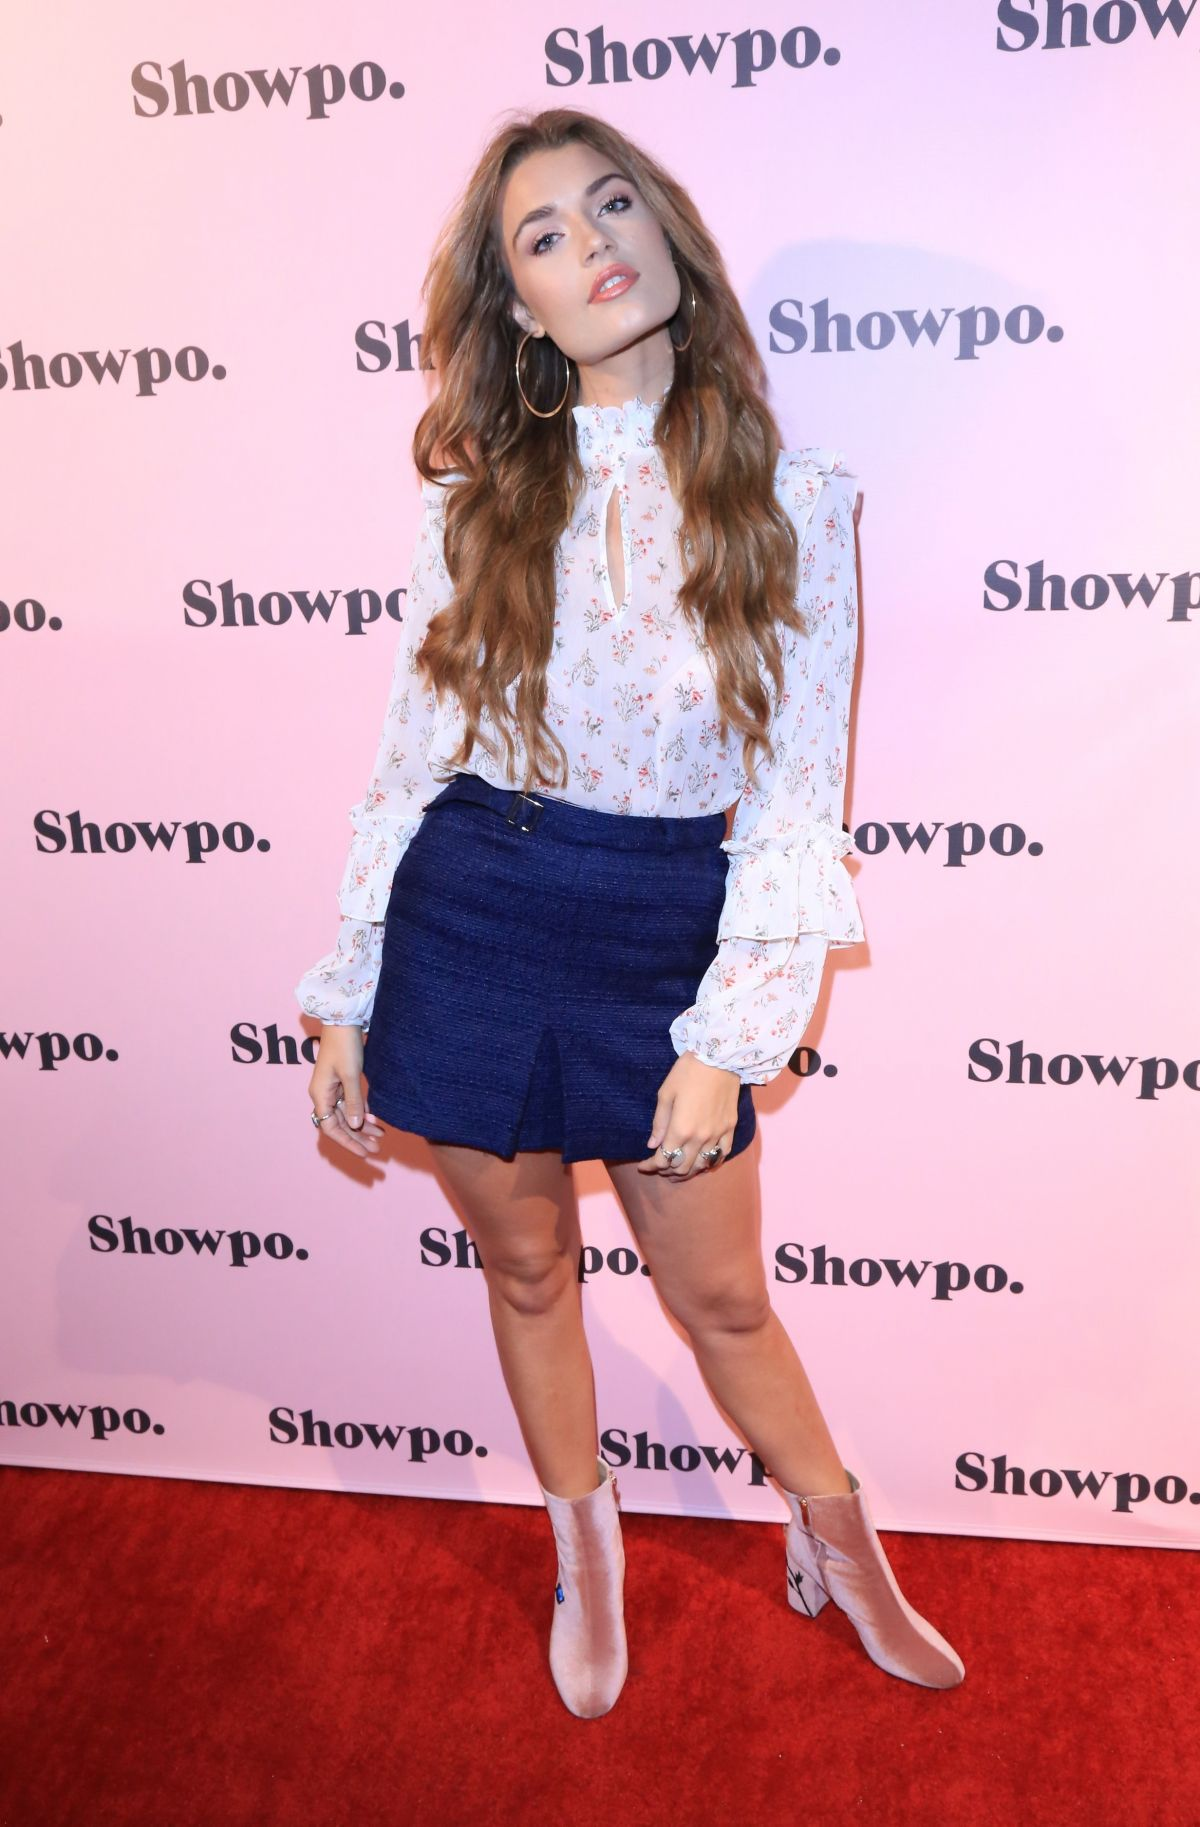 LACEY ROGERS at Showpo US Launch Party in Los Angeles 08/24/2017